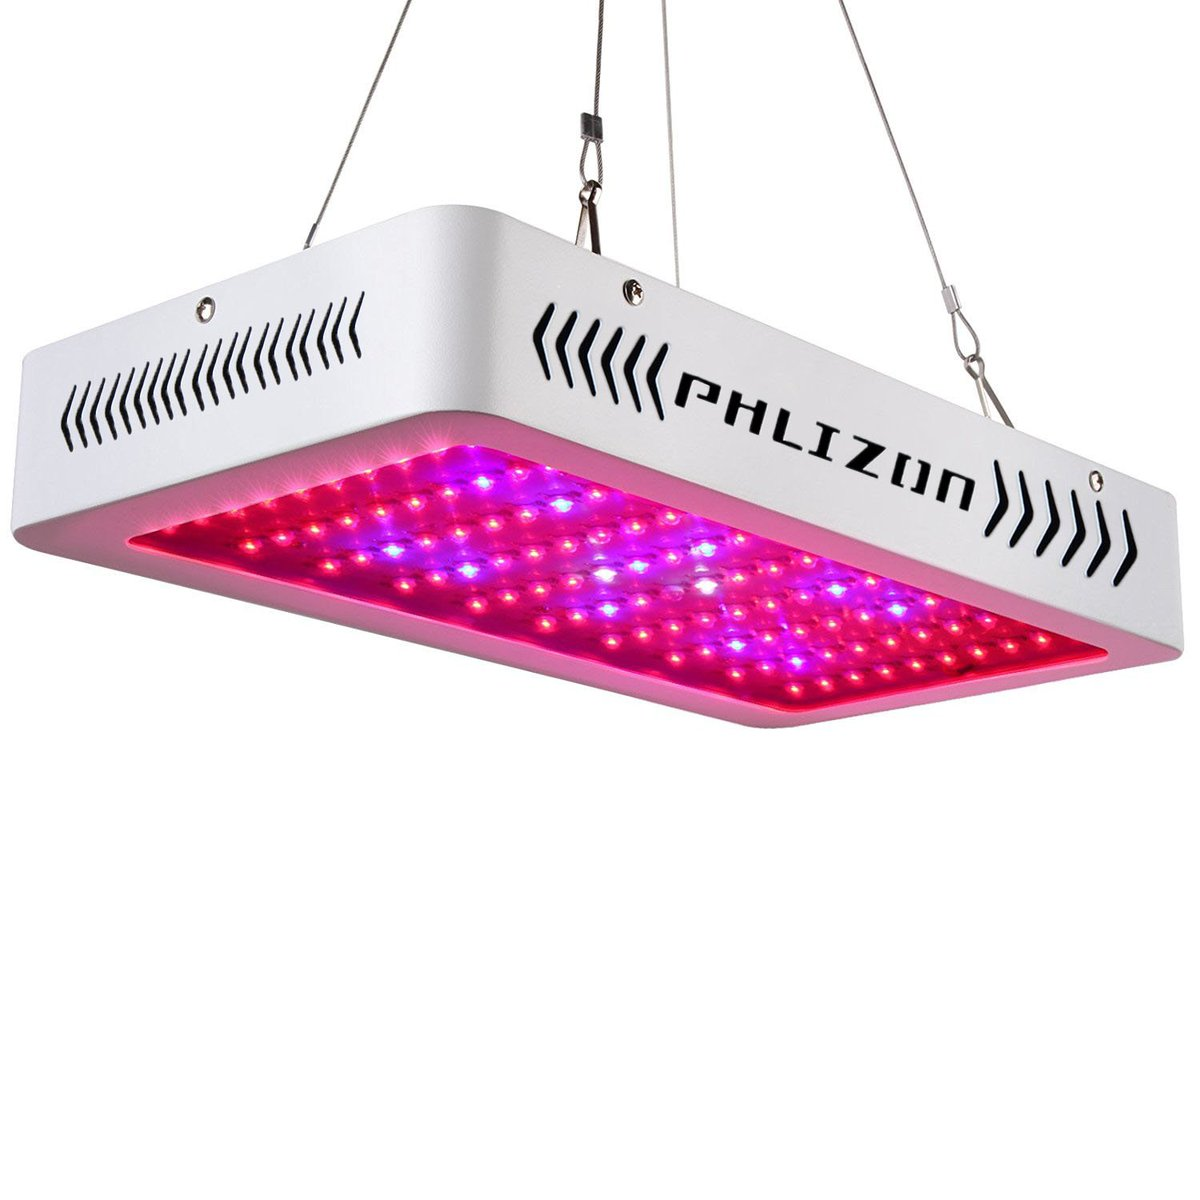 VEG&BLOOM 600W LED Plant Lighting